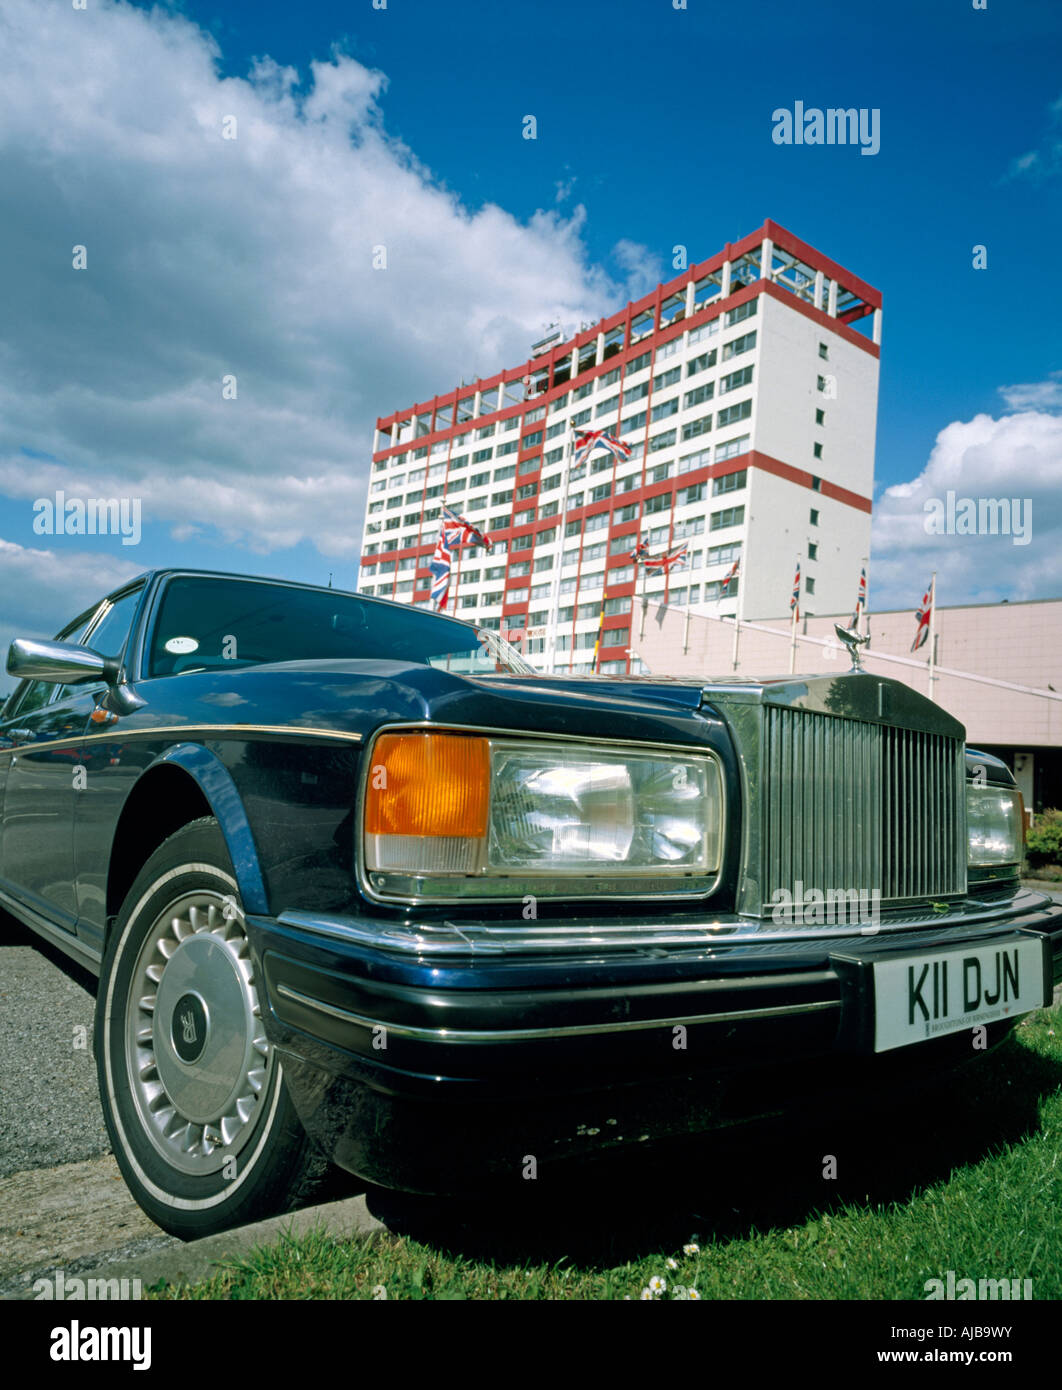 rolls royce radiator photos rolls royce radiator images alamy. Black Bedroom Furniture Sets. Home Design Ideas